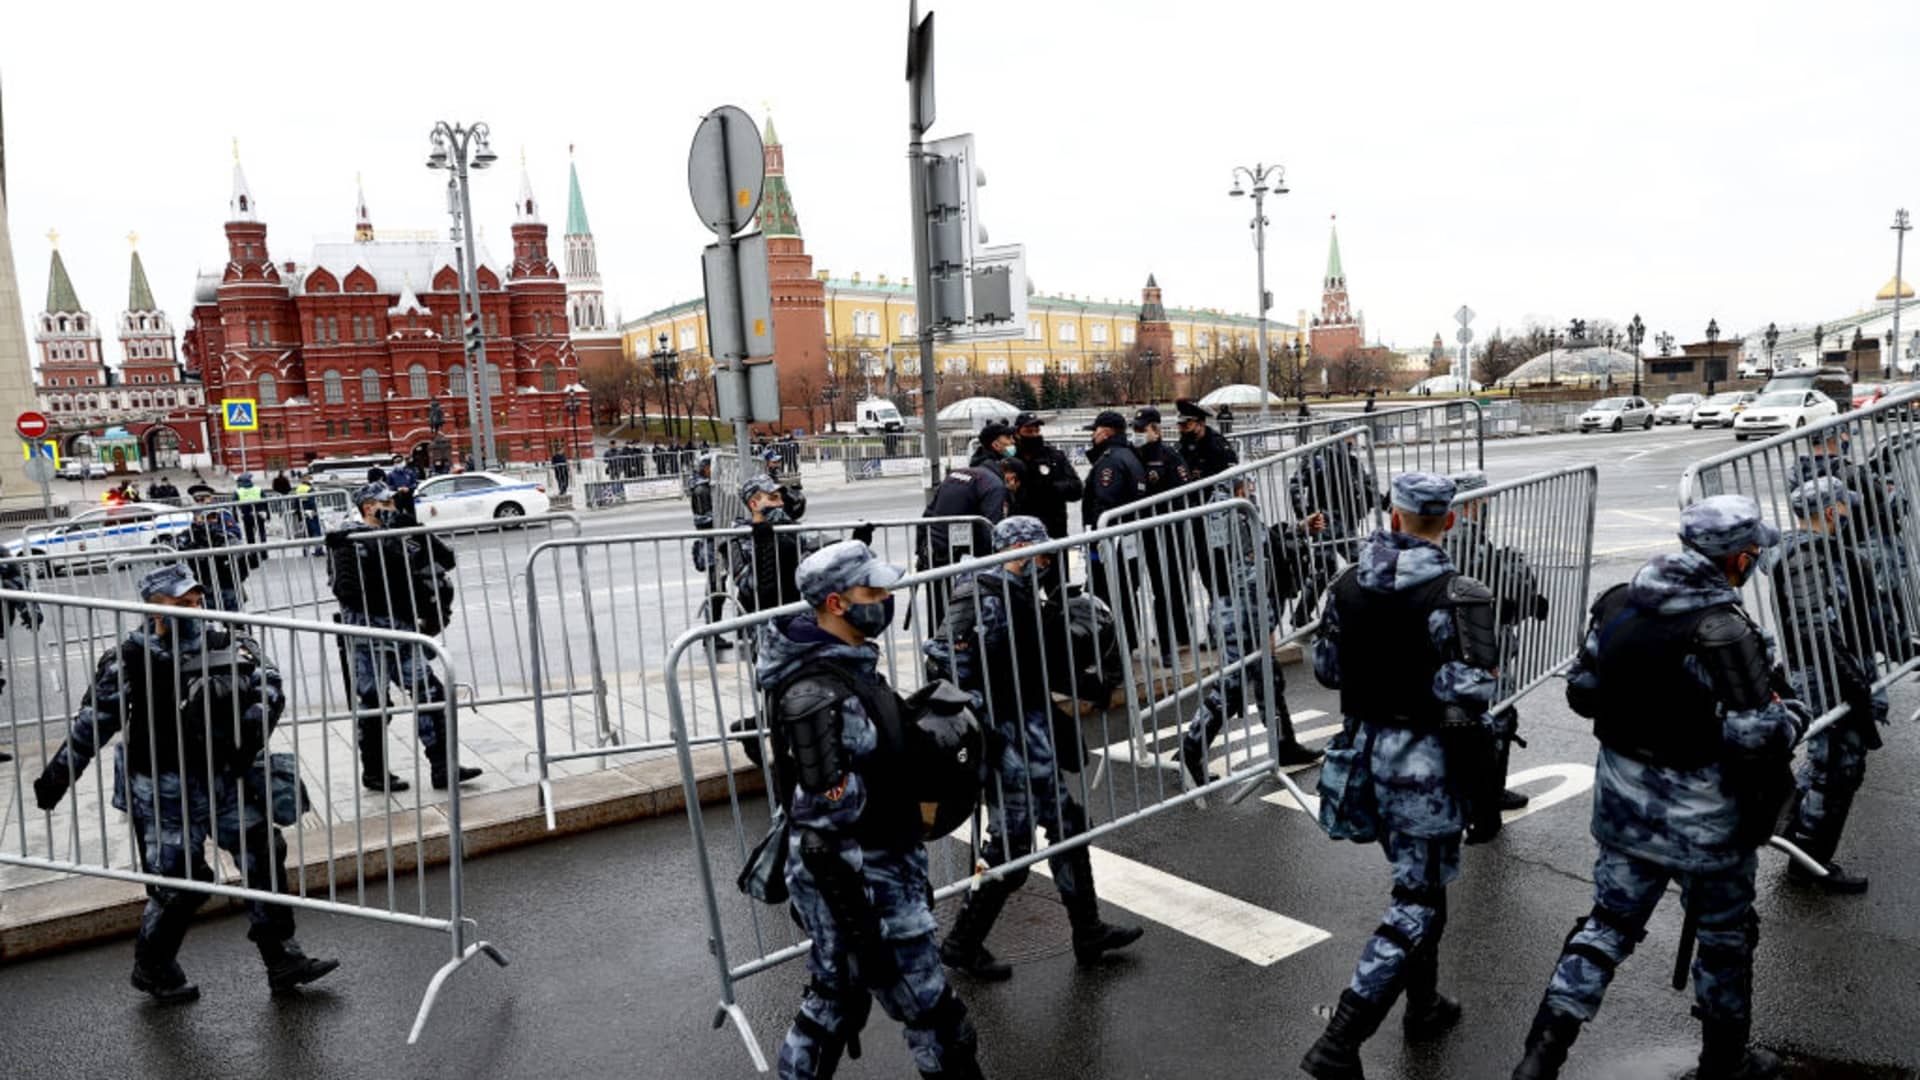 Russian police officers stand guard around the Kremlin Palace and Red Square on April 21, 2021.